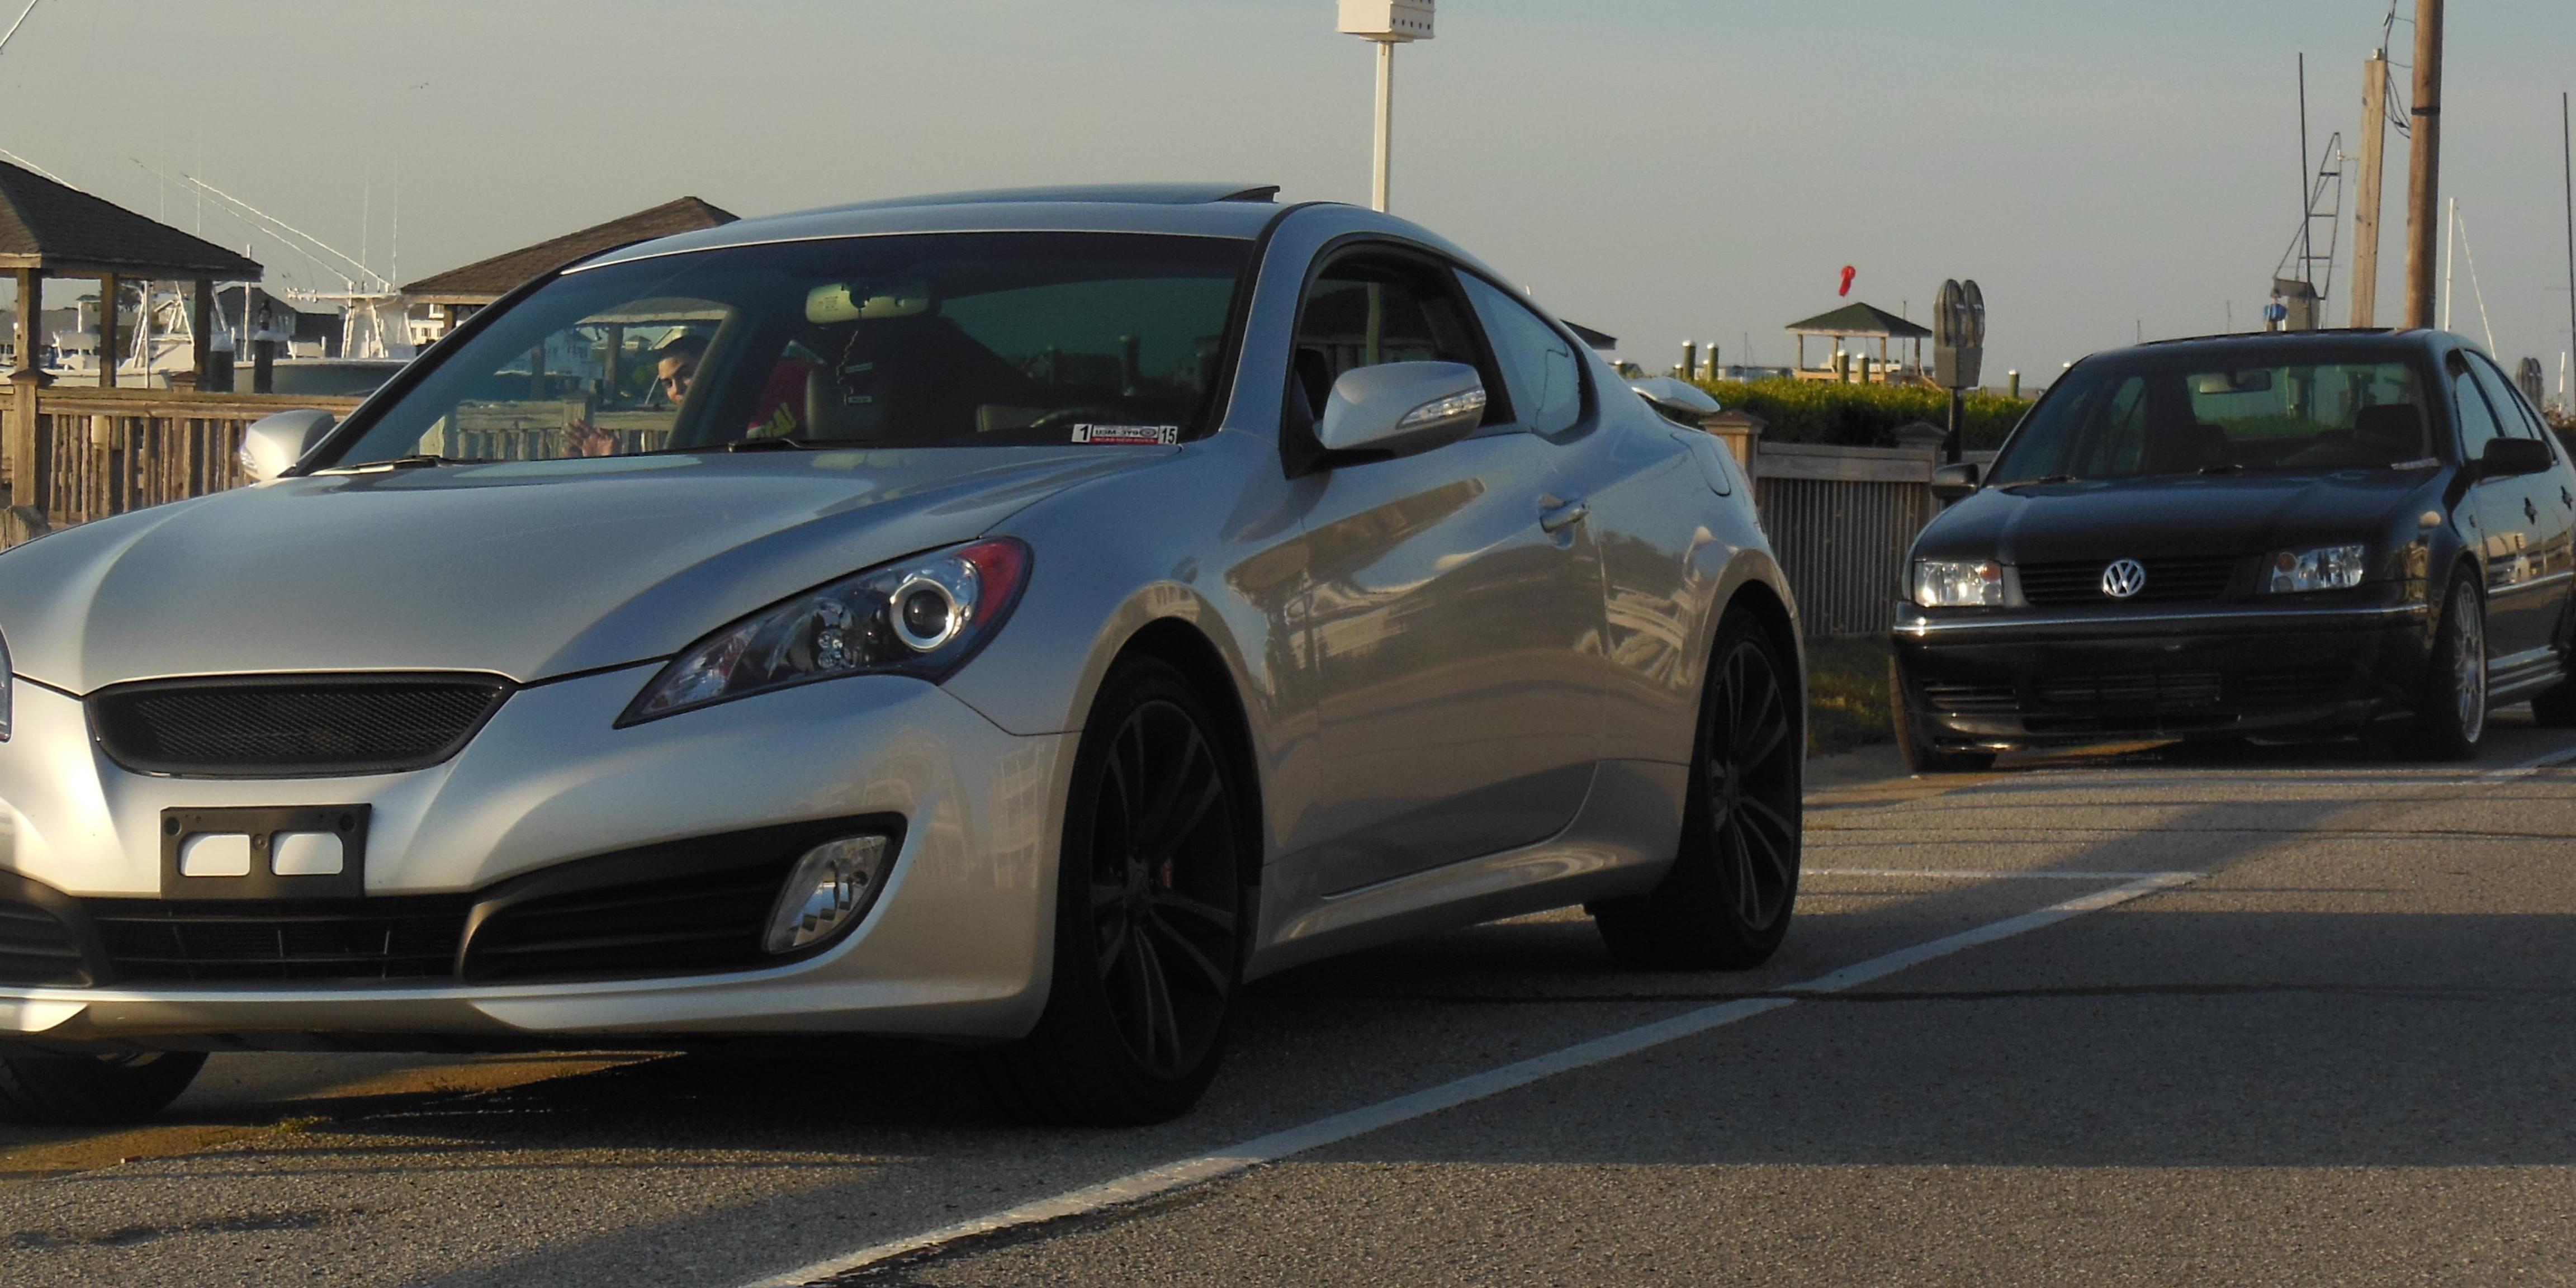 2011 Hyundai Genesis Coupe 3 8 Track Coupe 2d Page 3 View All 2011 Hyundai Genesis Coupe 3 8